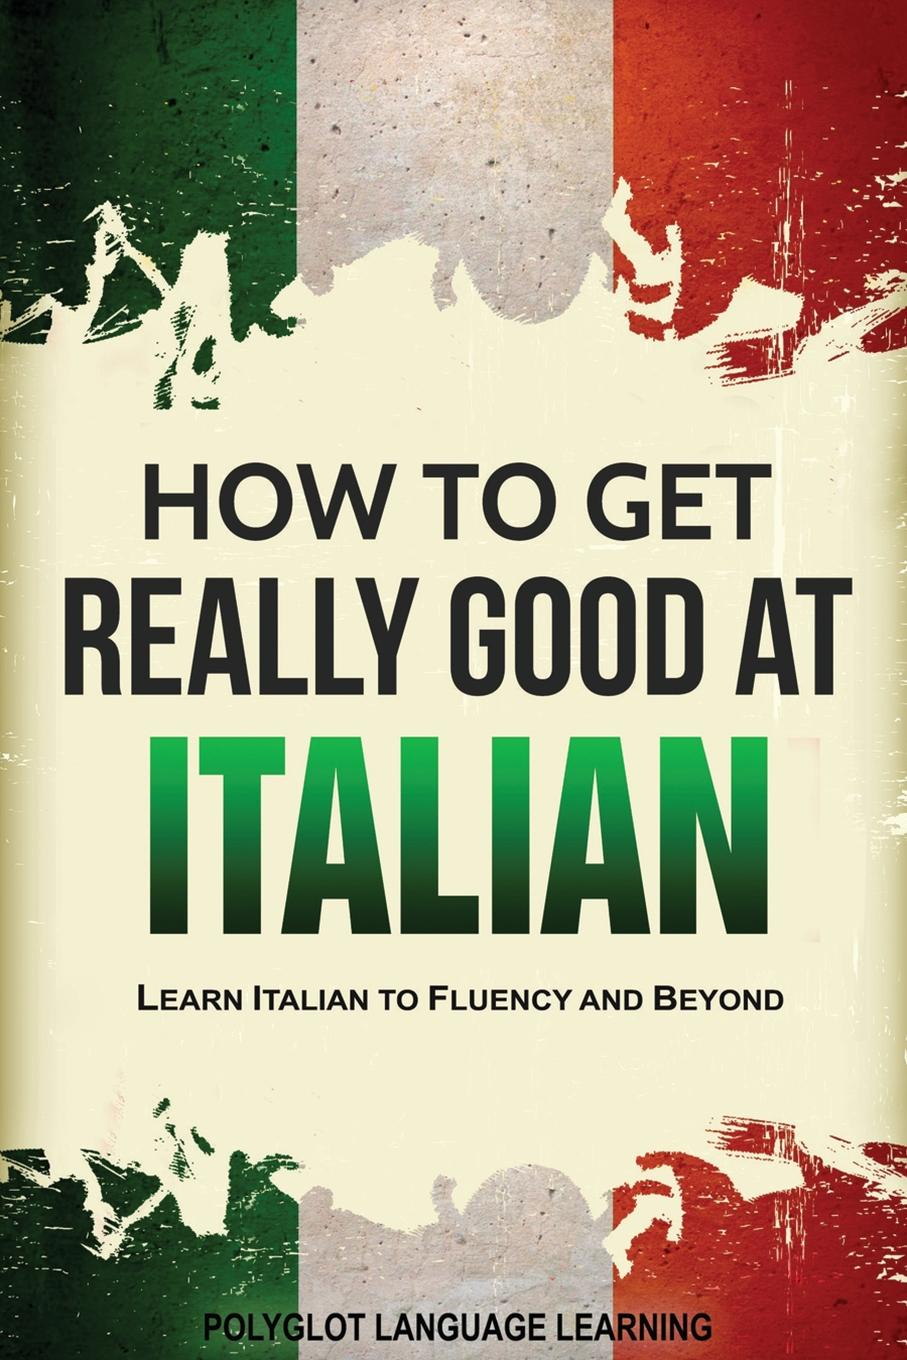 Language Learning Polyglot How to Get Really Good at Italian. Learn Italian to Fluency and Beyond andrey ermoshin learn languages easily methods of self regulation for successful learning